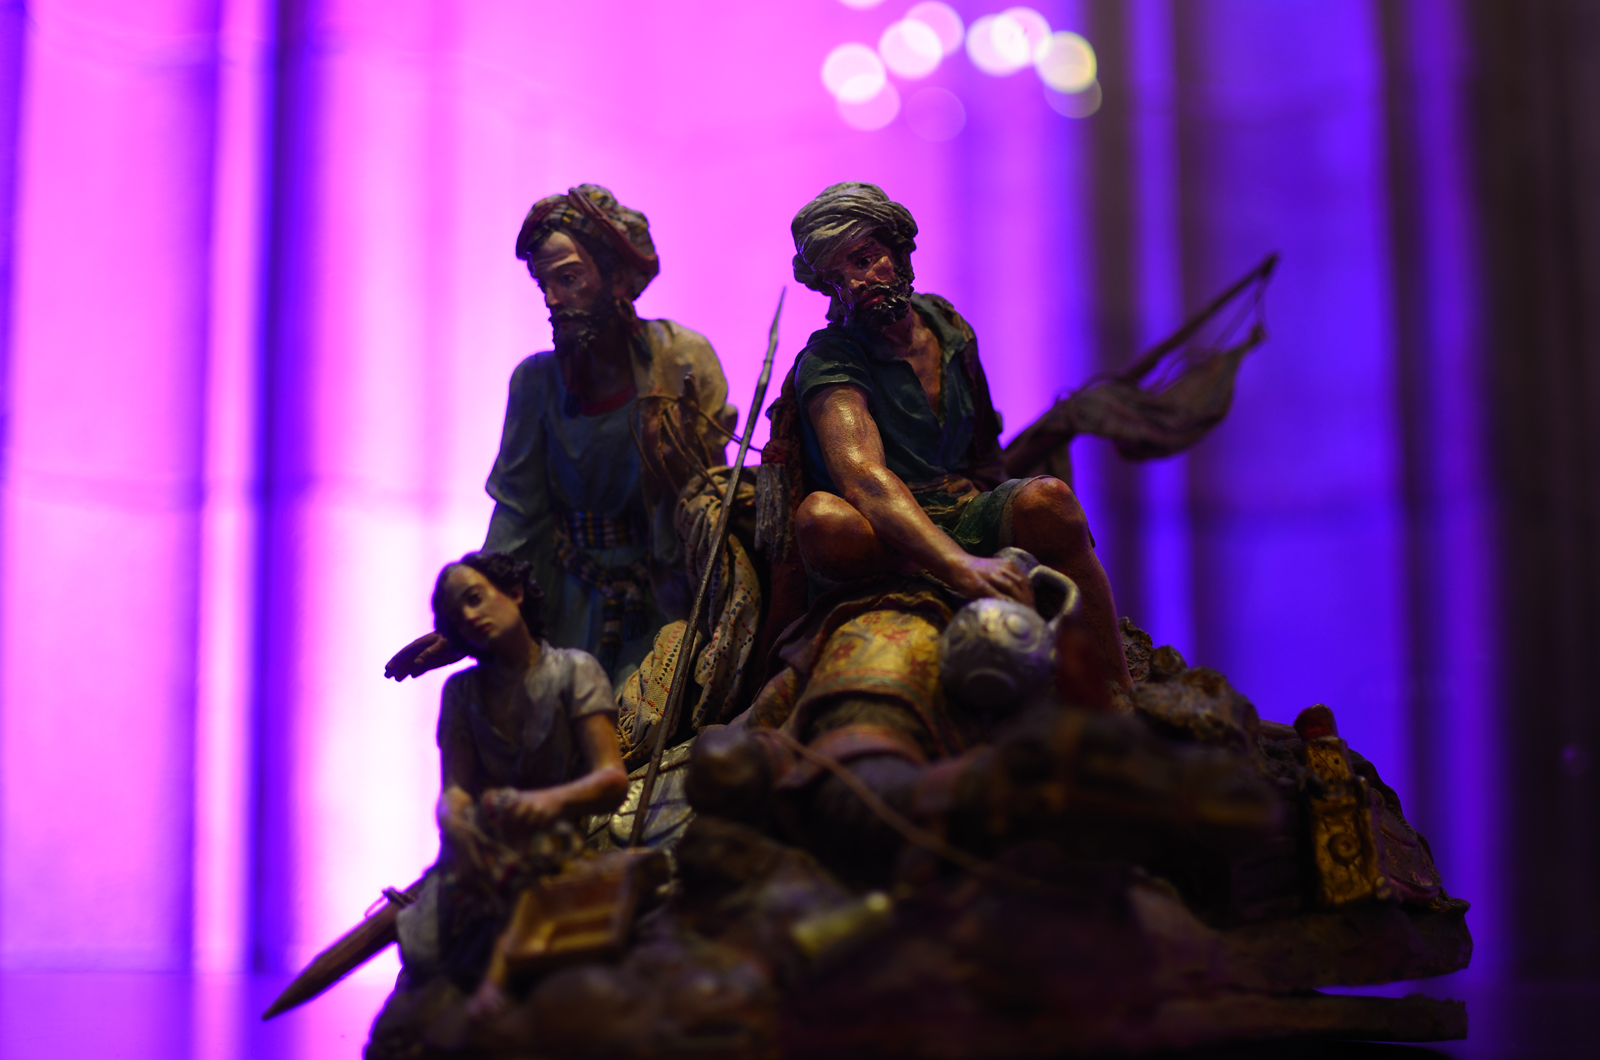 Biblical Magi sculpture by Domenech Talarn